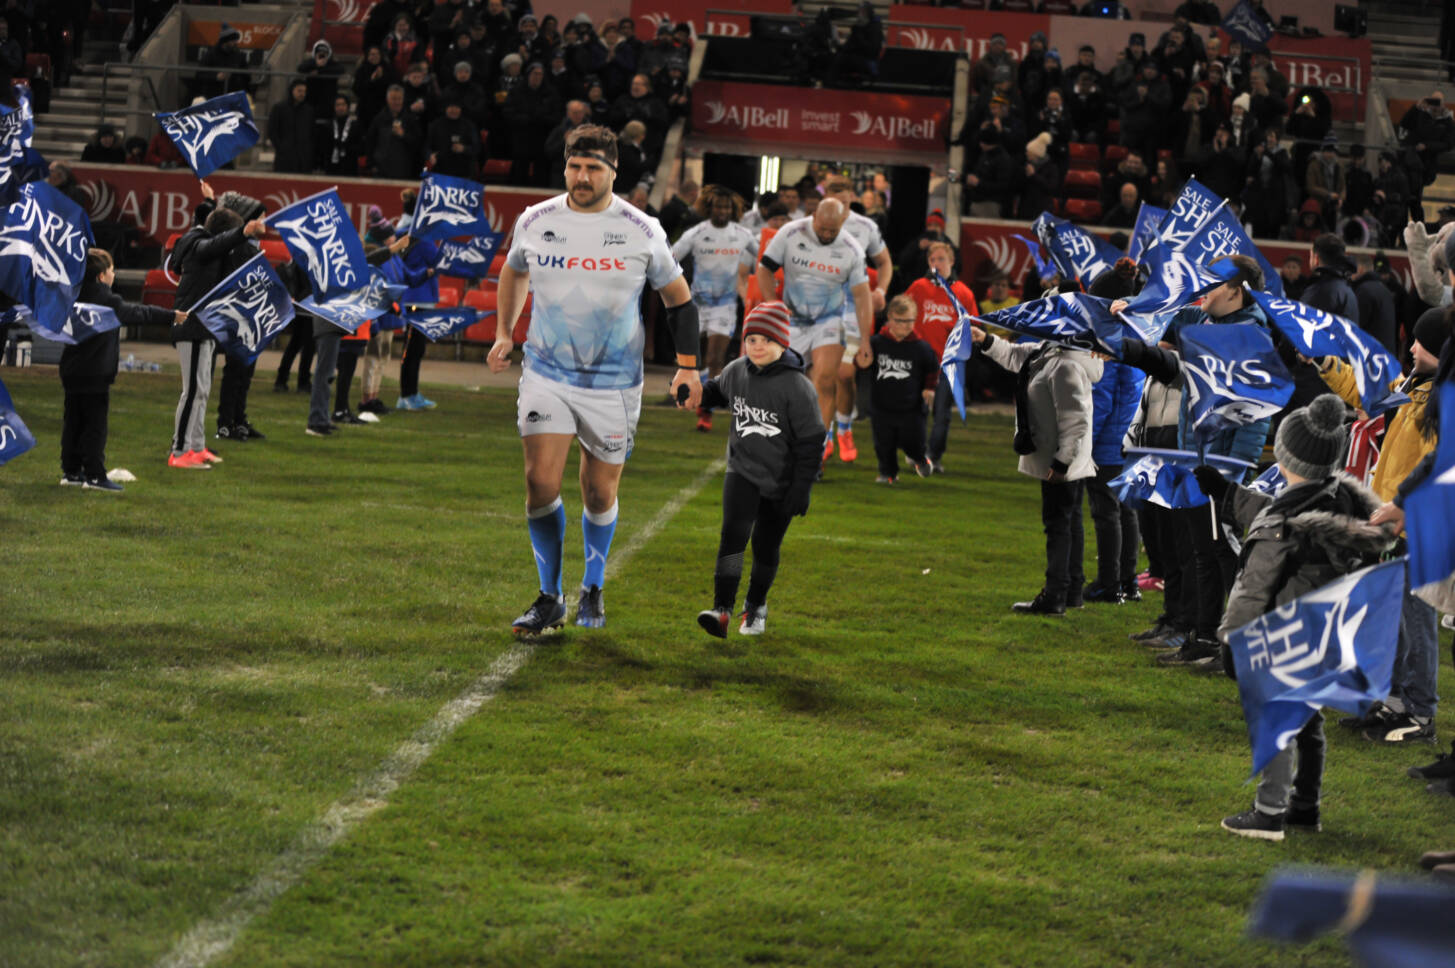 City Downs Syndrome Group given free tickets to Sharks' semi-final by Printerland